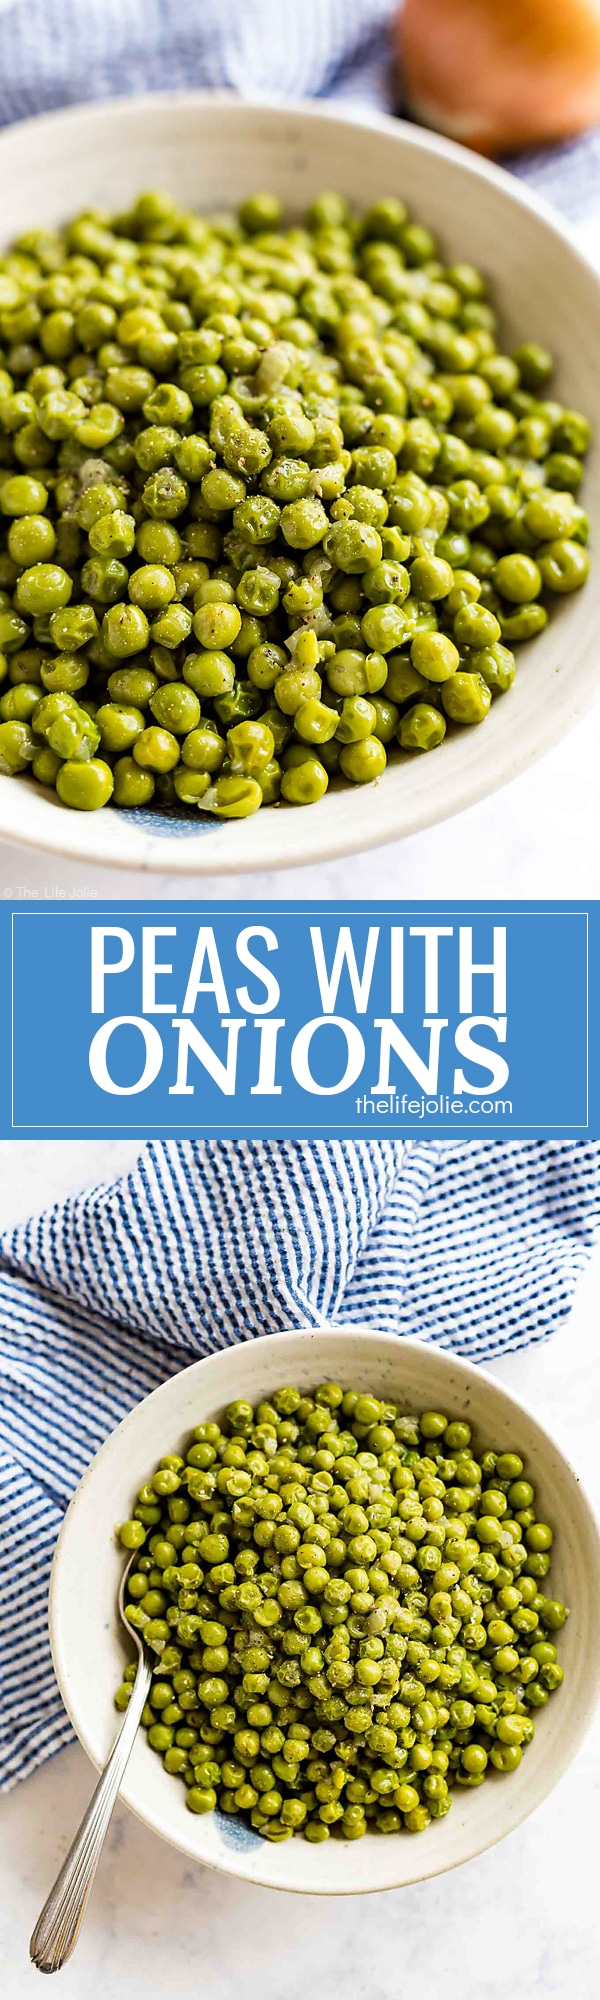 Peas with Onions is the most easy side dish! With a few simple ingredients, this recipe is a snap to throw together on a busy week night but delicious enough to serve at a gathering or with a holiday dinner.